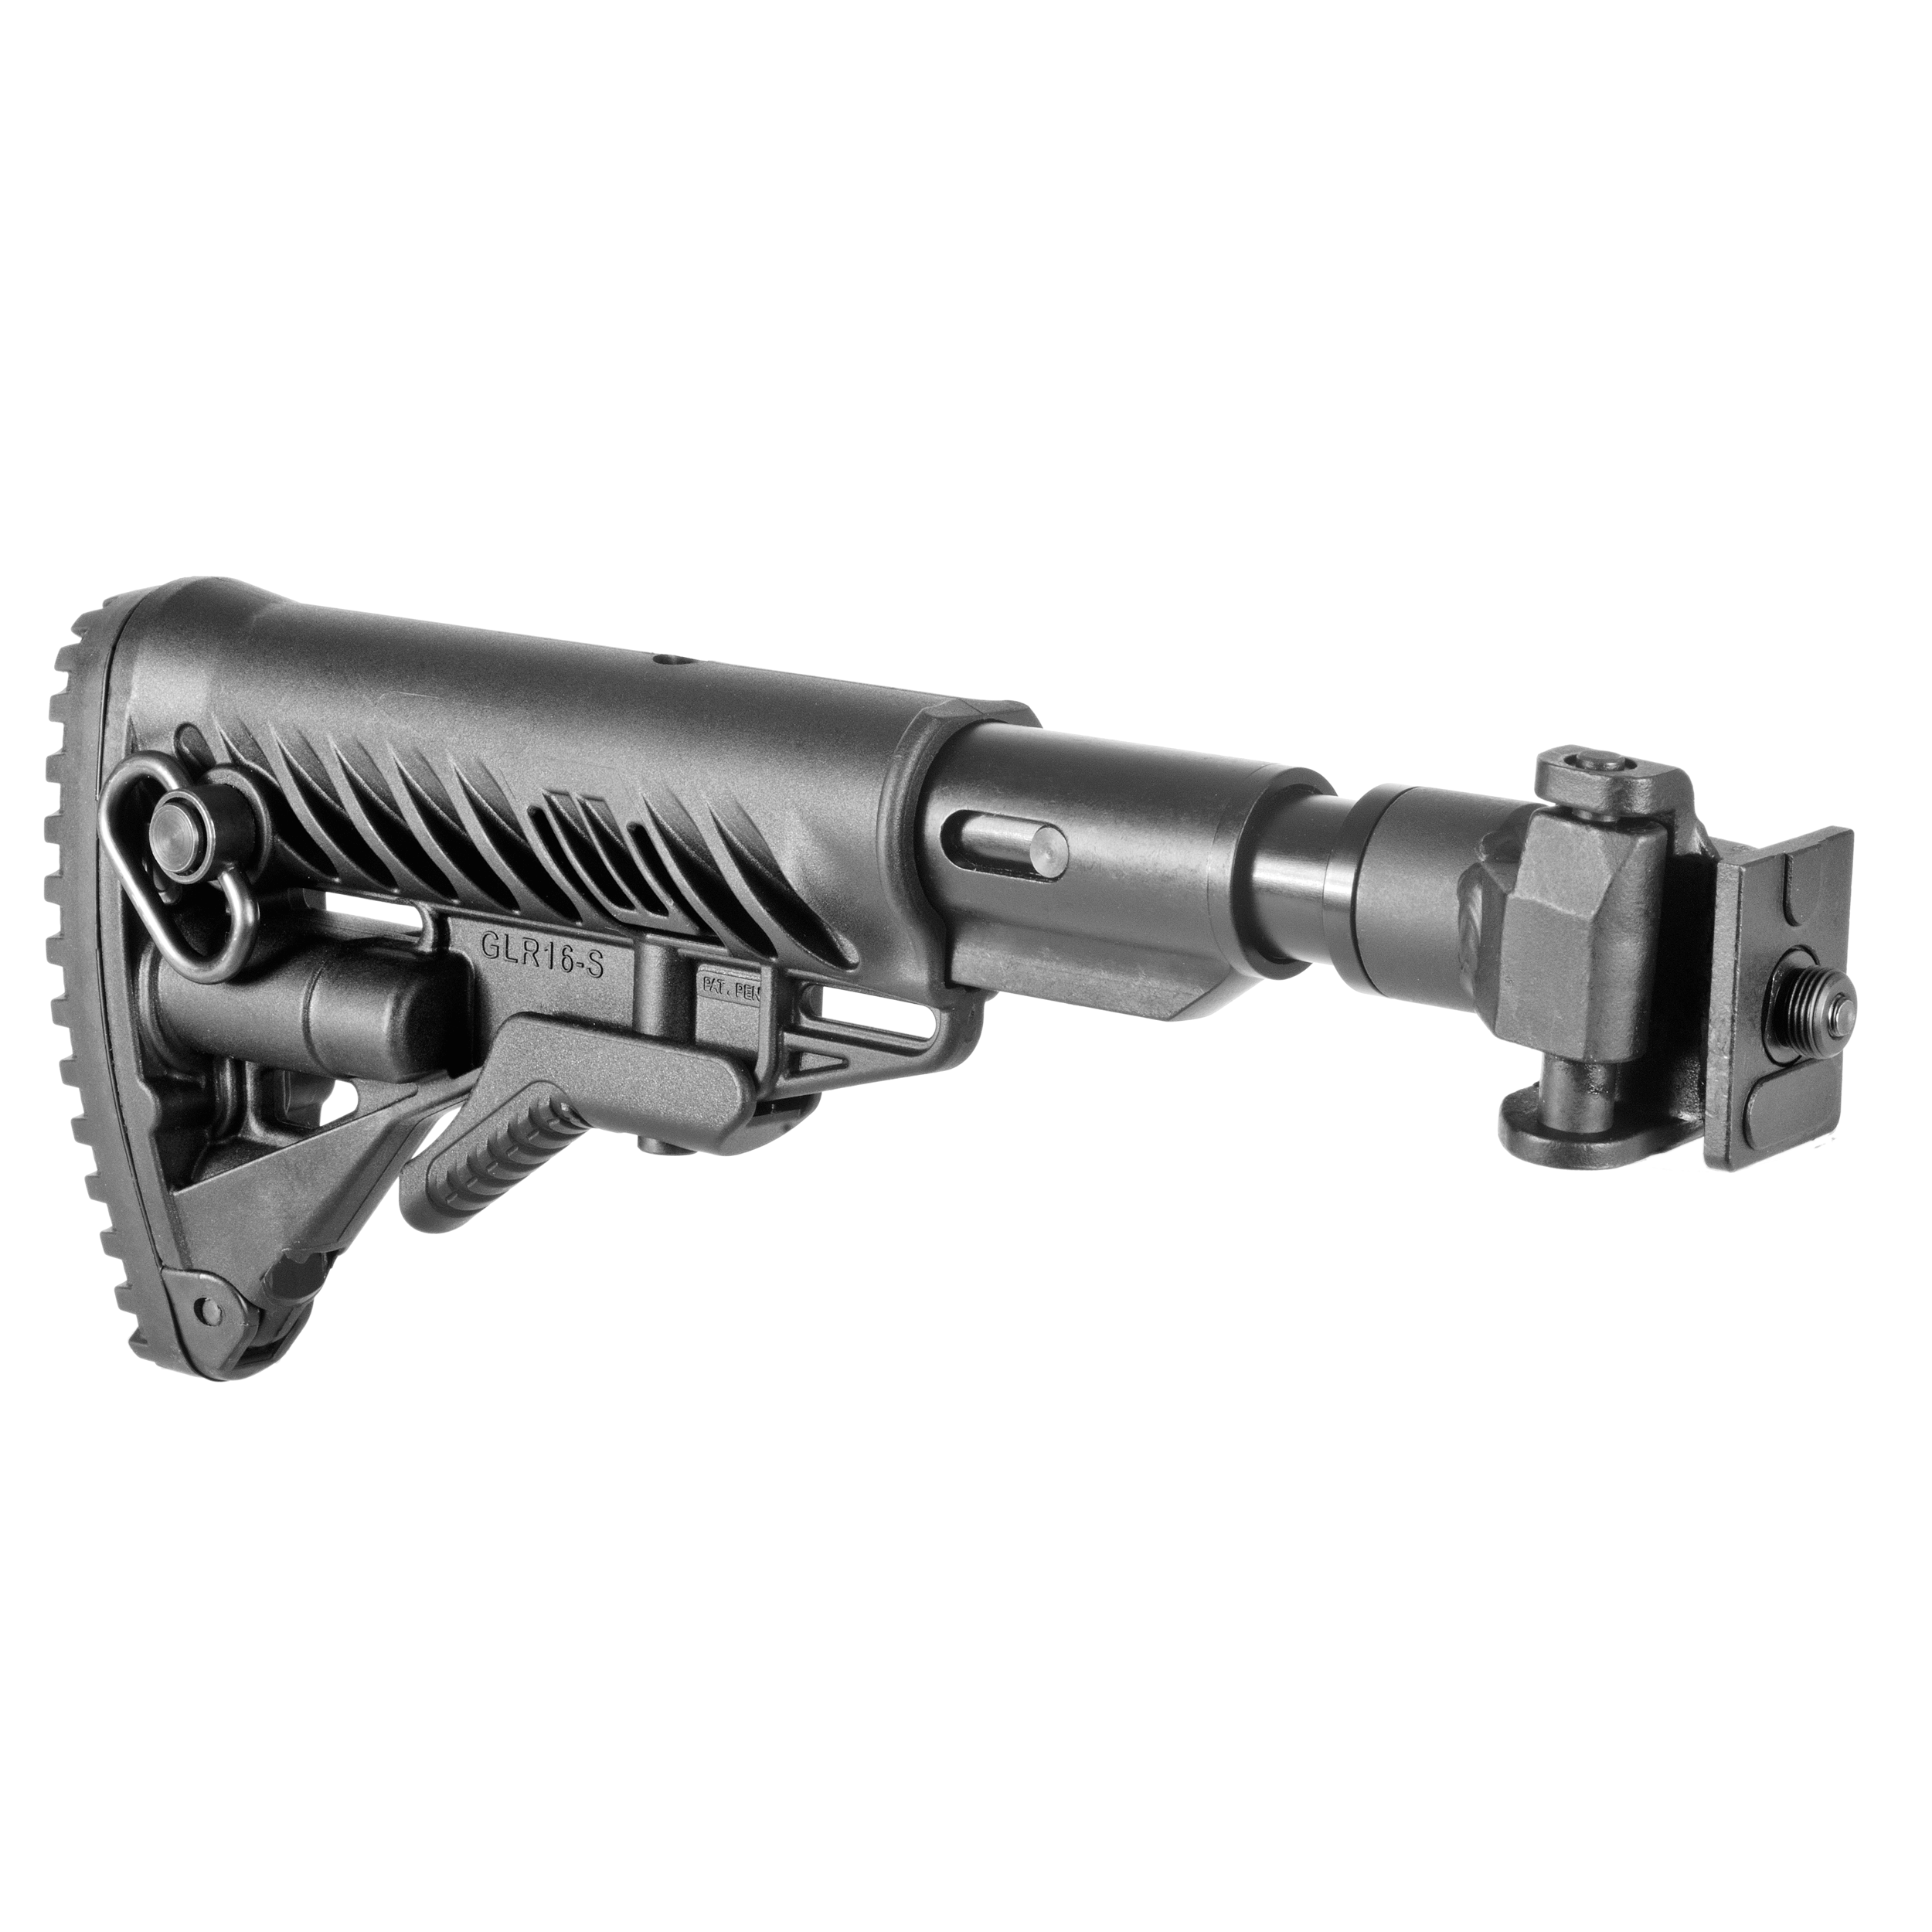 VZ58 folding buttstock / shock absorbing/ AR15 Stil (Metal Joint)